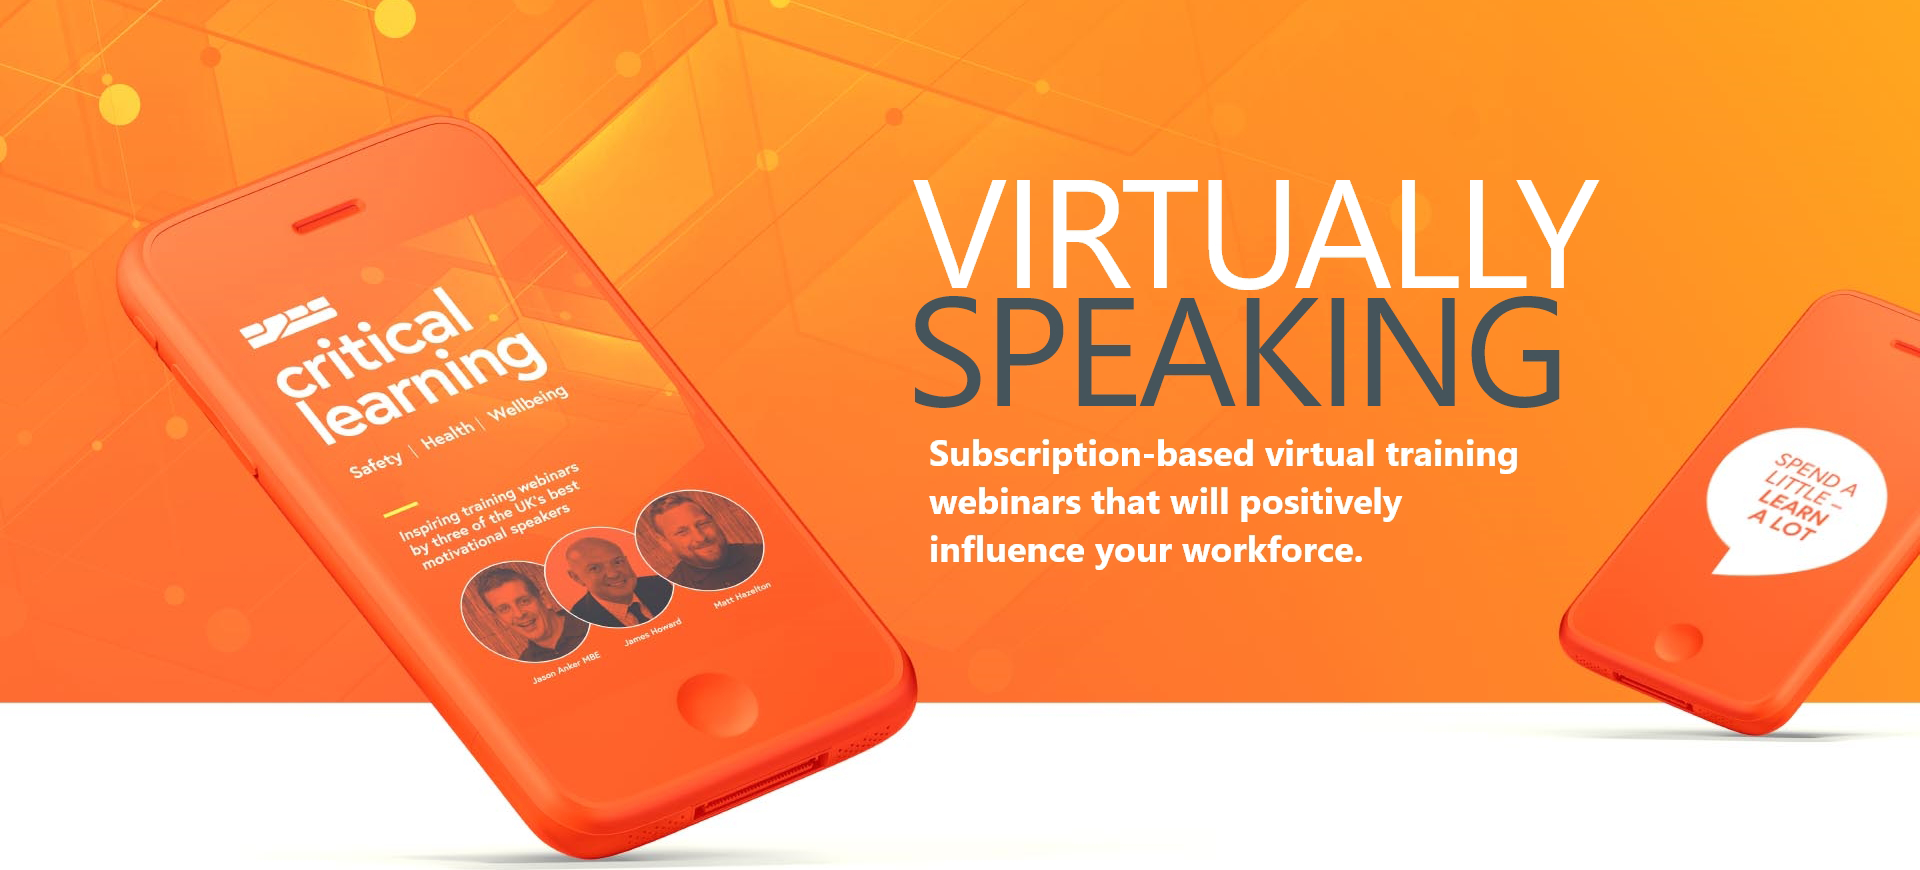 Vrtually speaking banner3